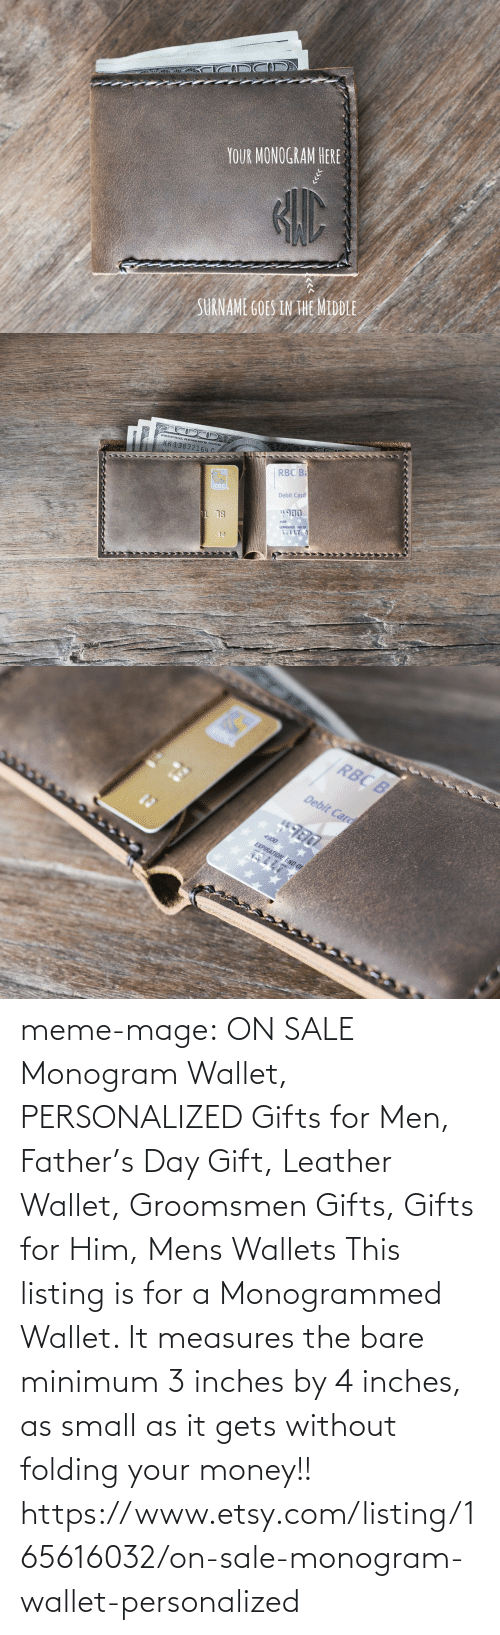 Groomsmen: YOUR MONOGRAM HERE  SURNAME GOES IN HE MIDDLE   KK 138  NOTE  832164 с  RBC B  BC  Debit Card  #900  13  4900  EXPIRATION: END OF   RBC B  Debit Carg  EXPIRATION: END OF meme-mage:      ON SALE Monogram Wallet, PERSONALIZED Gifts for Men, Father's Day Gift, Leather Wallet, Groomsmen Gifts, Gifts for Him, Mens Wallets      This listing is for a Monogrammed Wallet. It measures the bare minimum 3 inches by 4 inches, as small as it gets without folding your money!!   https://www.etsy.com/listing/165616032/on-sale-monogram-wallet-personalized